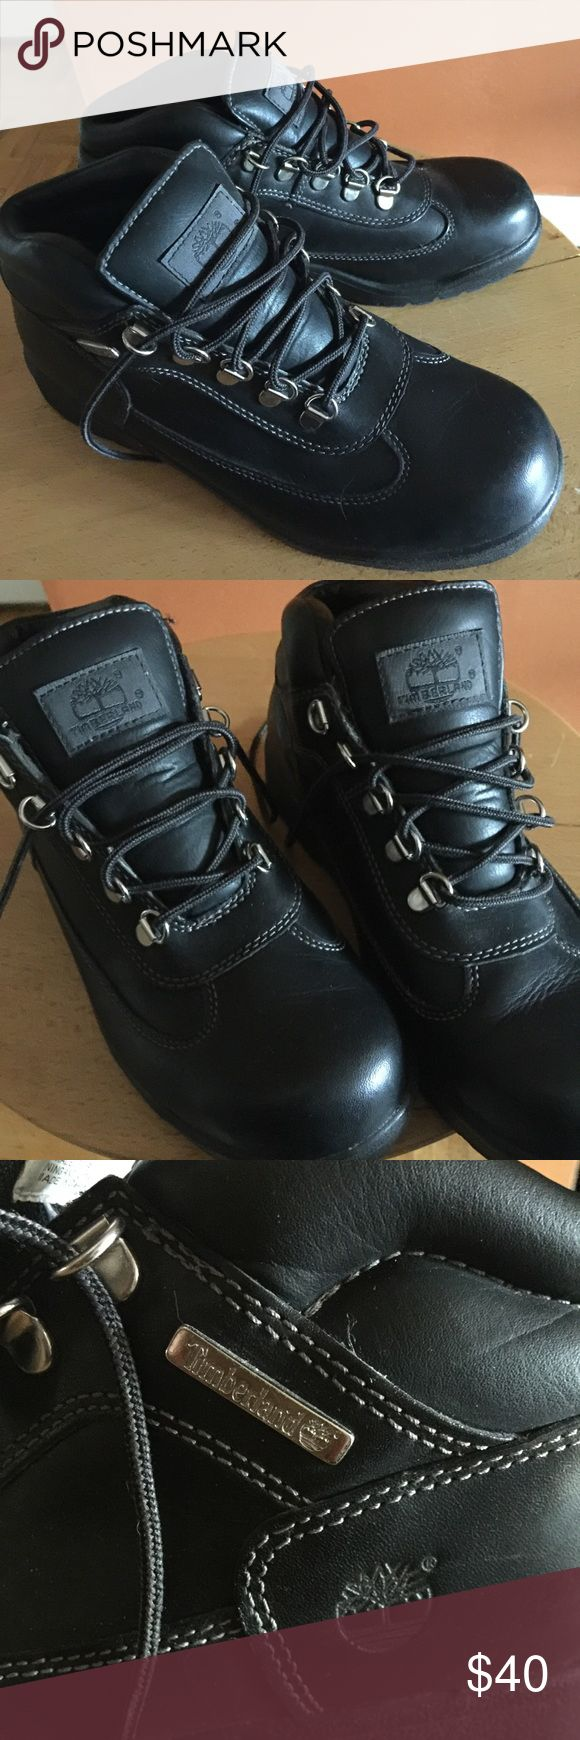 Black Timberland boots Great condition black leather timberland boots! 6.5 men's / 8.5 women Timberland Shoes Winter & Rain Boots